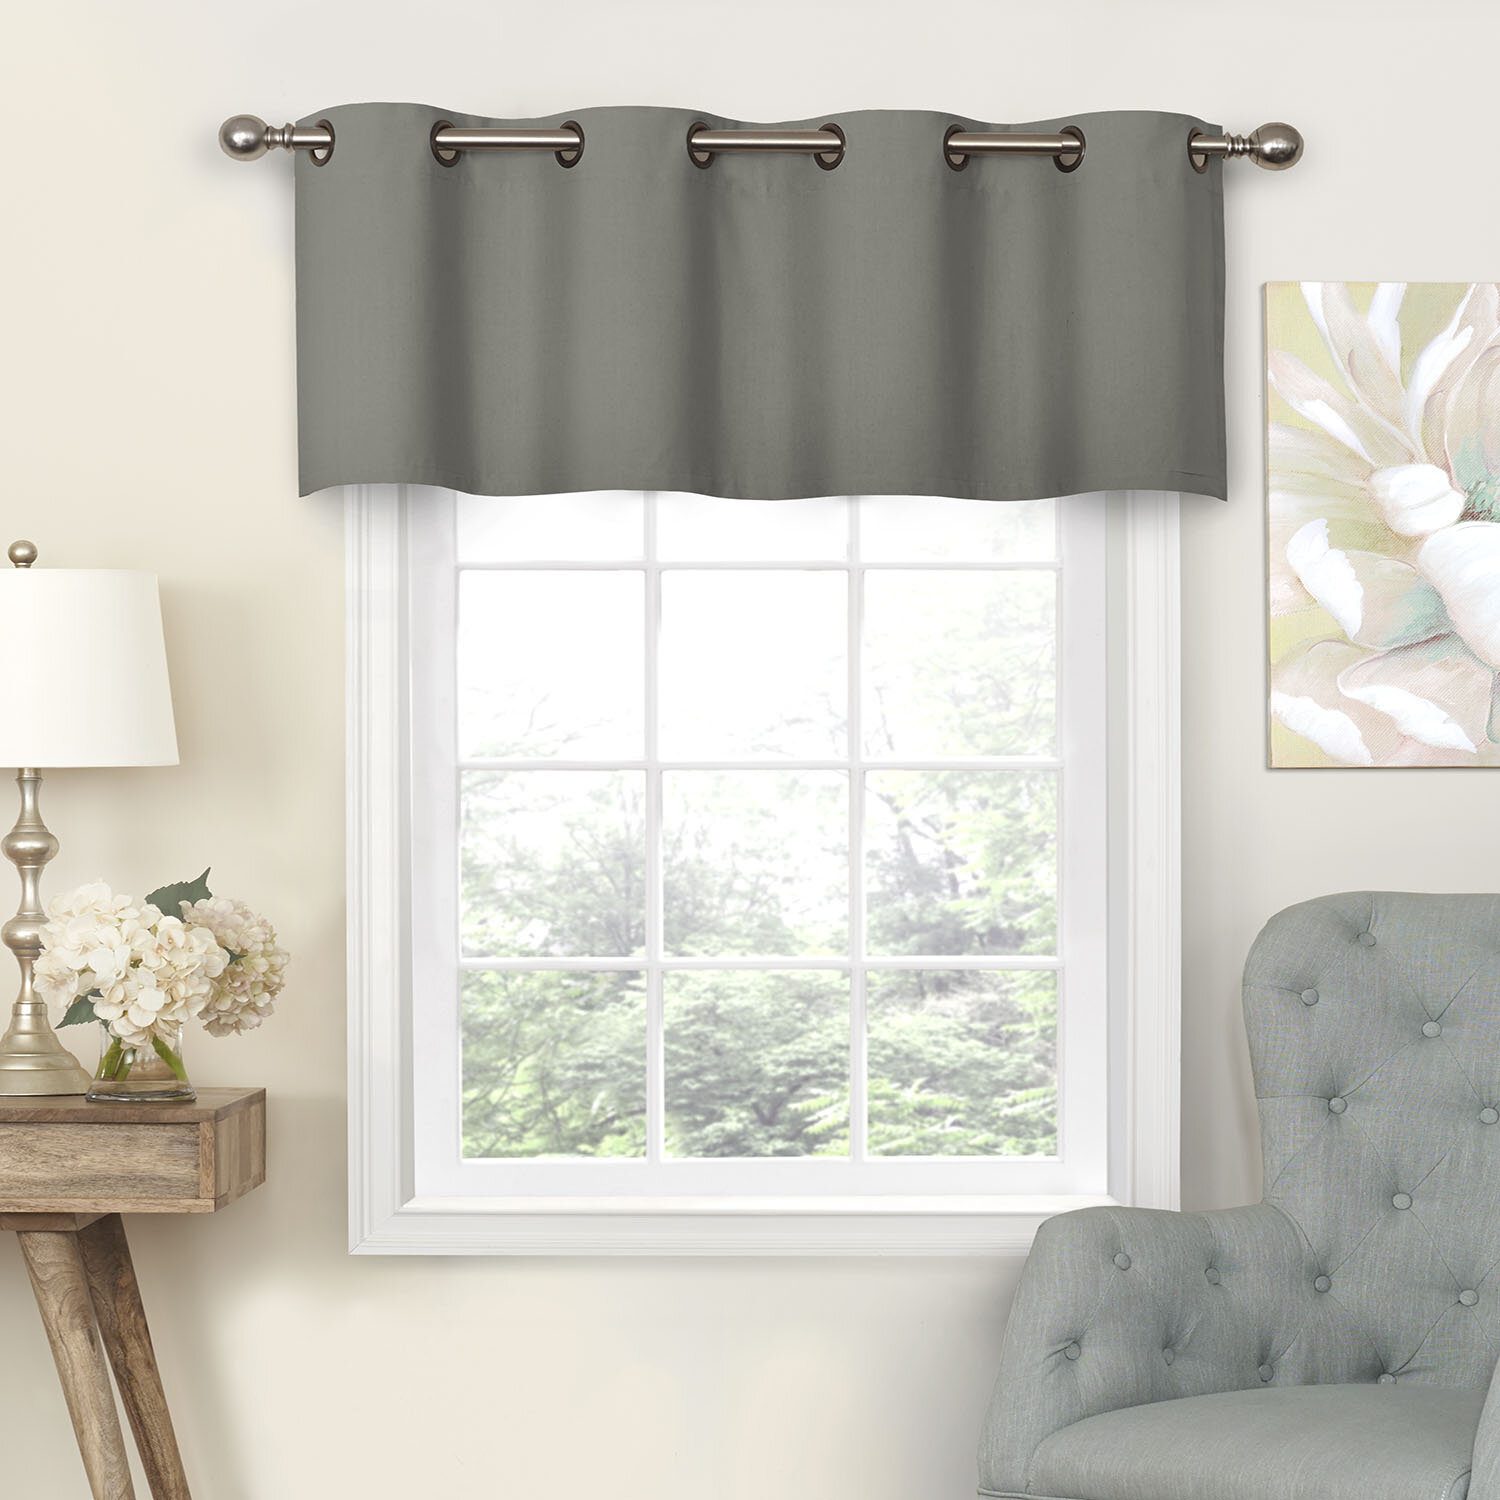 Ghent Blackout Grommet Curtain Valance Within Luxury Light Filtering Straight Curtain Valances (View 20 of 20)